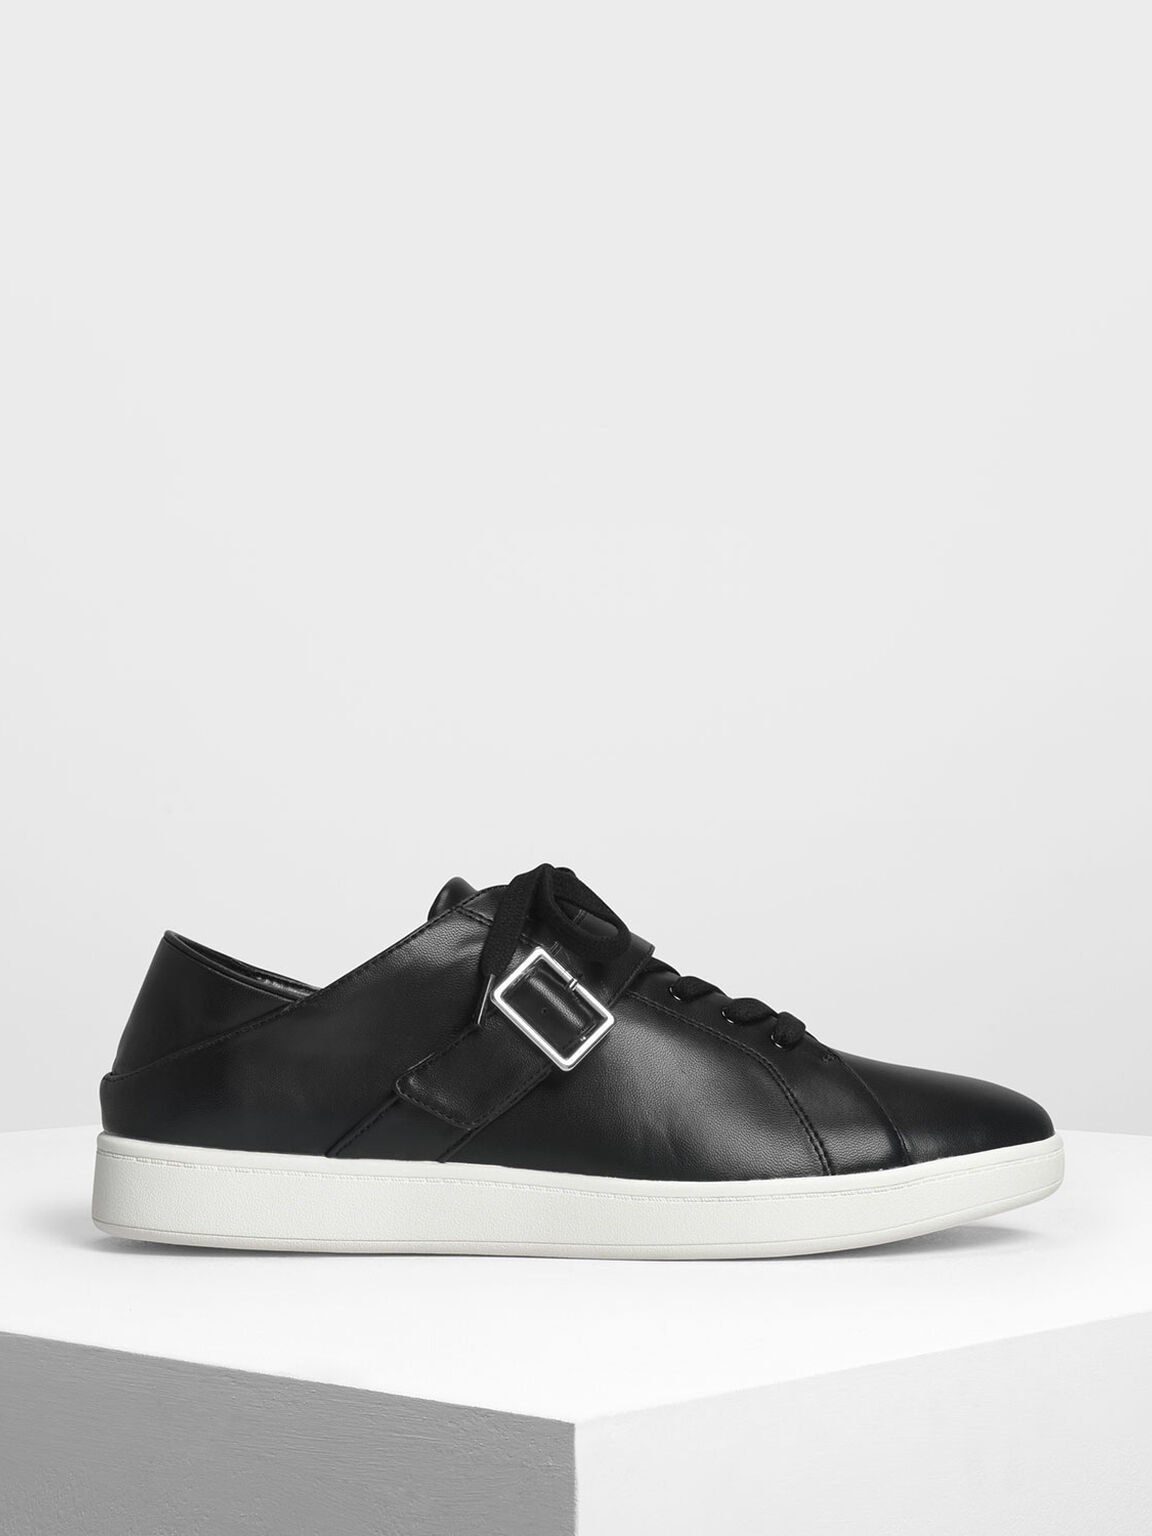 Metal Buckle Sneakers, Black, hi-res